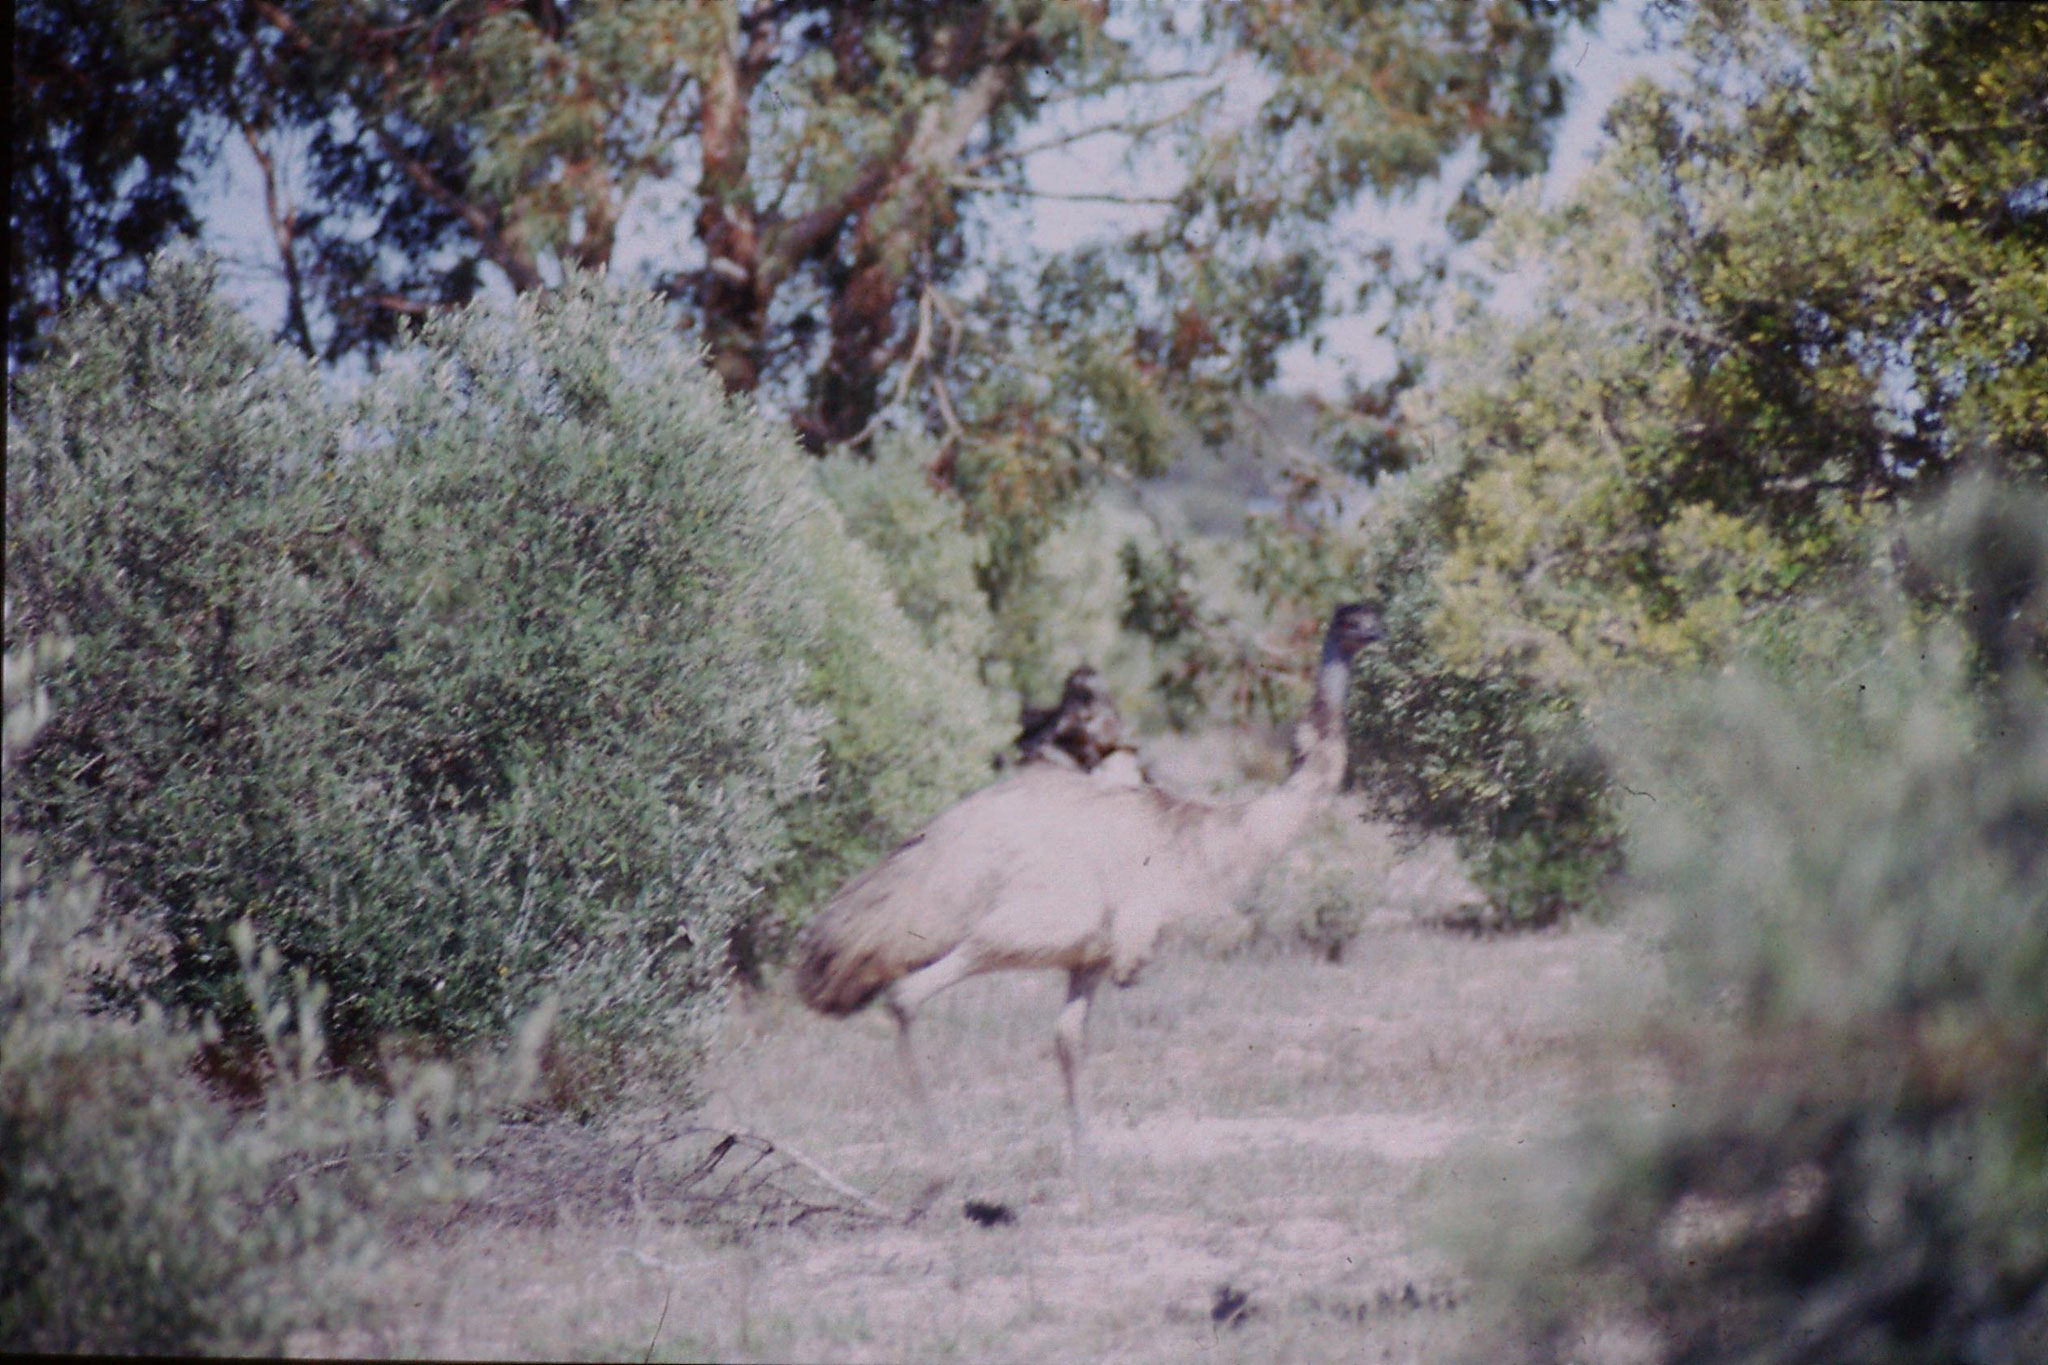 23/9/1990: 13: Little Desert, emu